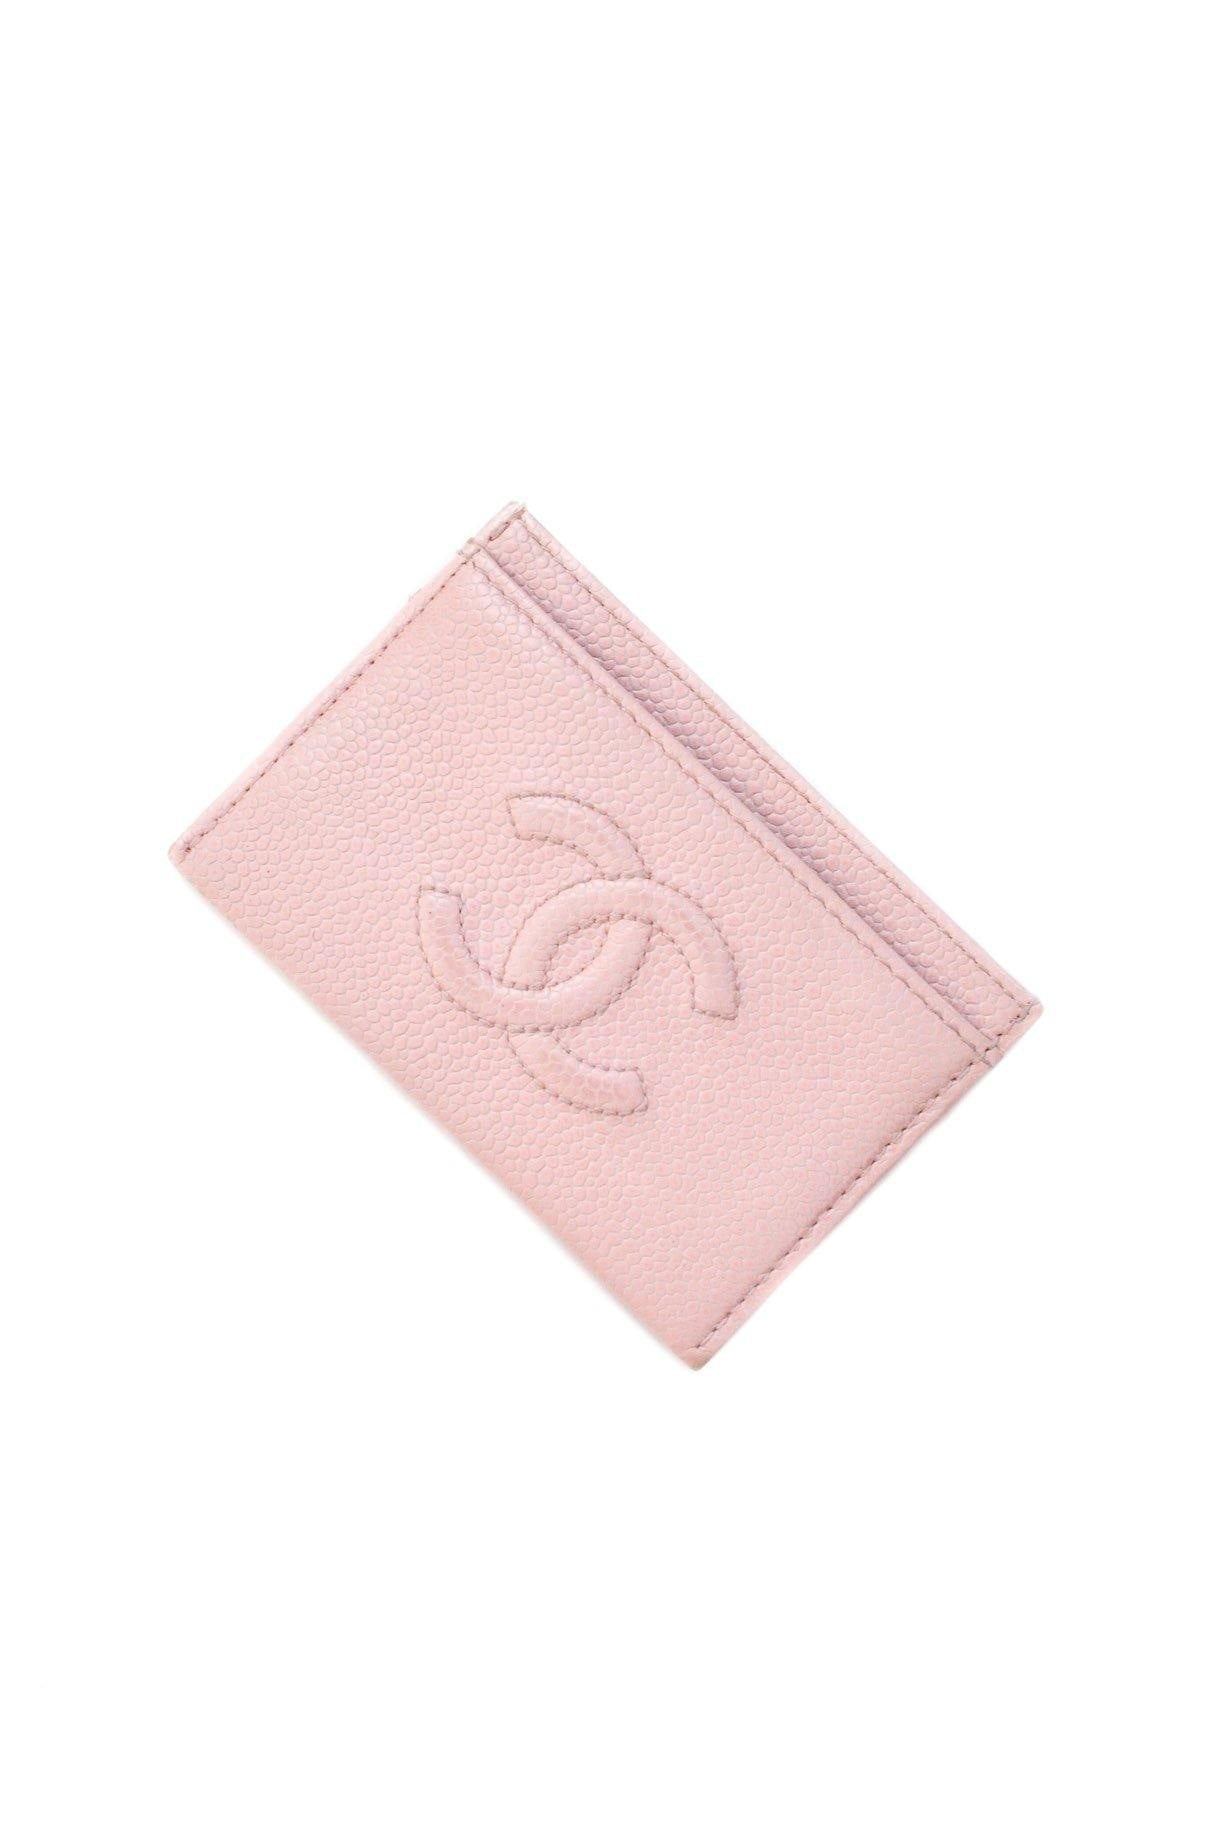 Chanel Pink Card Case